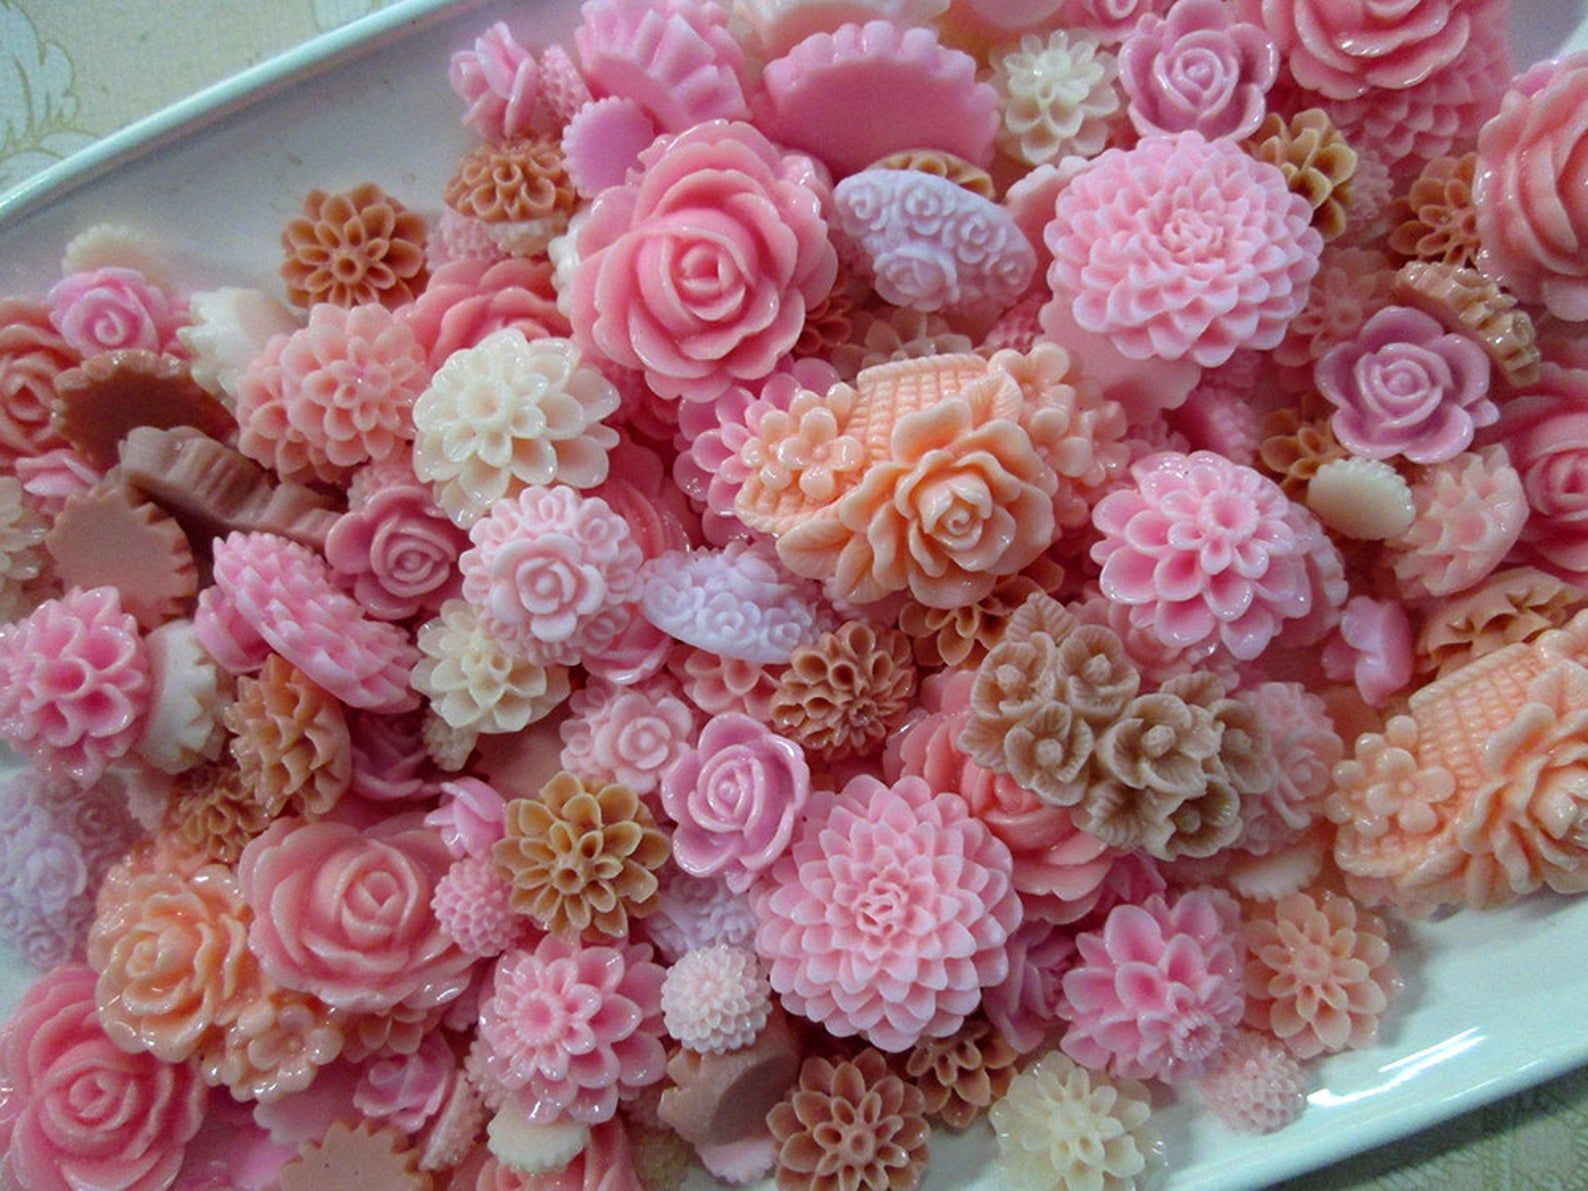 25pc. pink flower cabochon mix, cute grab bag of roses, mums etc...